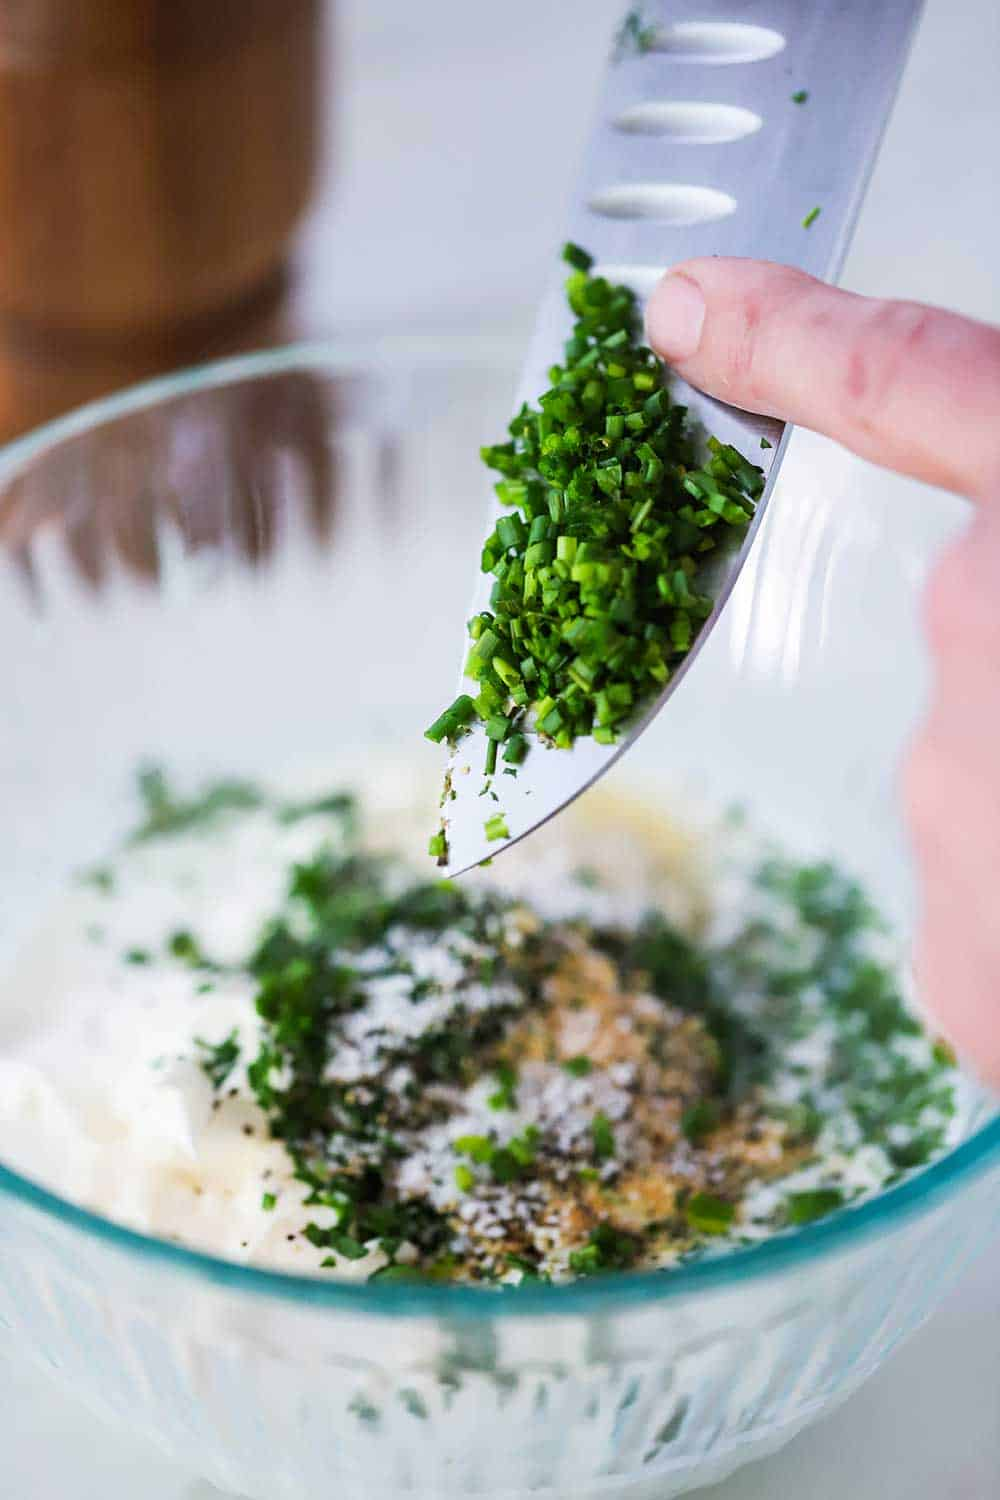 A hand scraping chopped chives into a bowl of Ranch dressing ingredients.